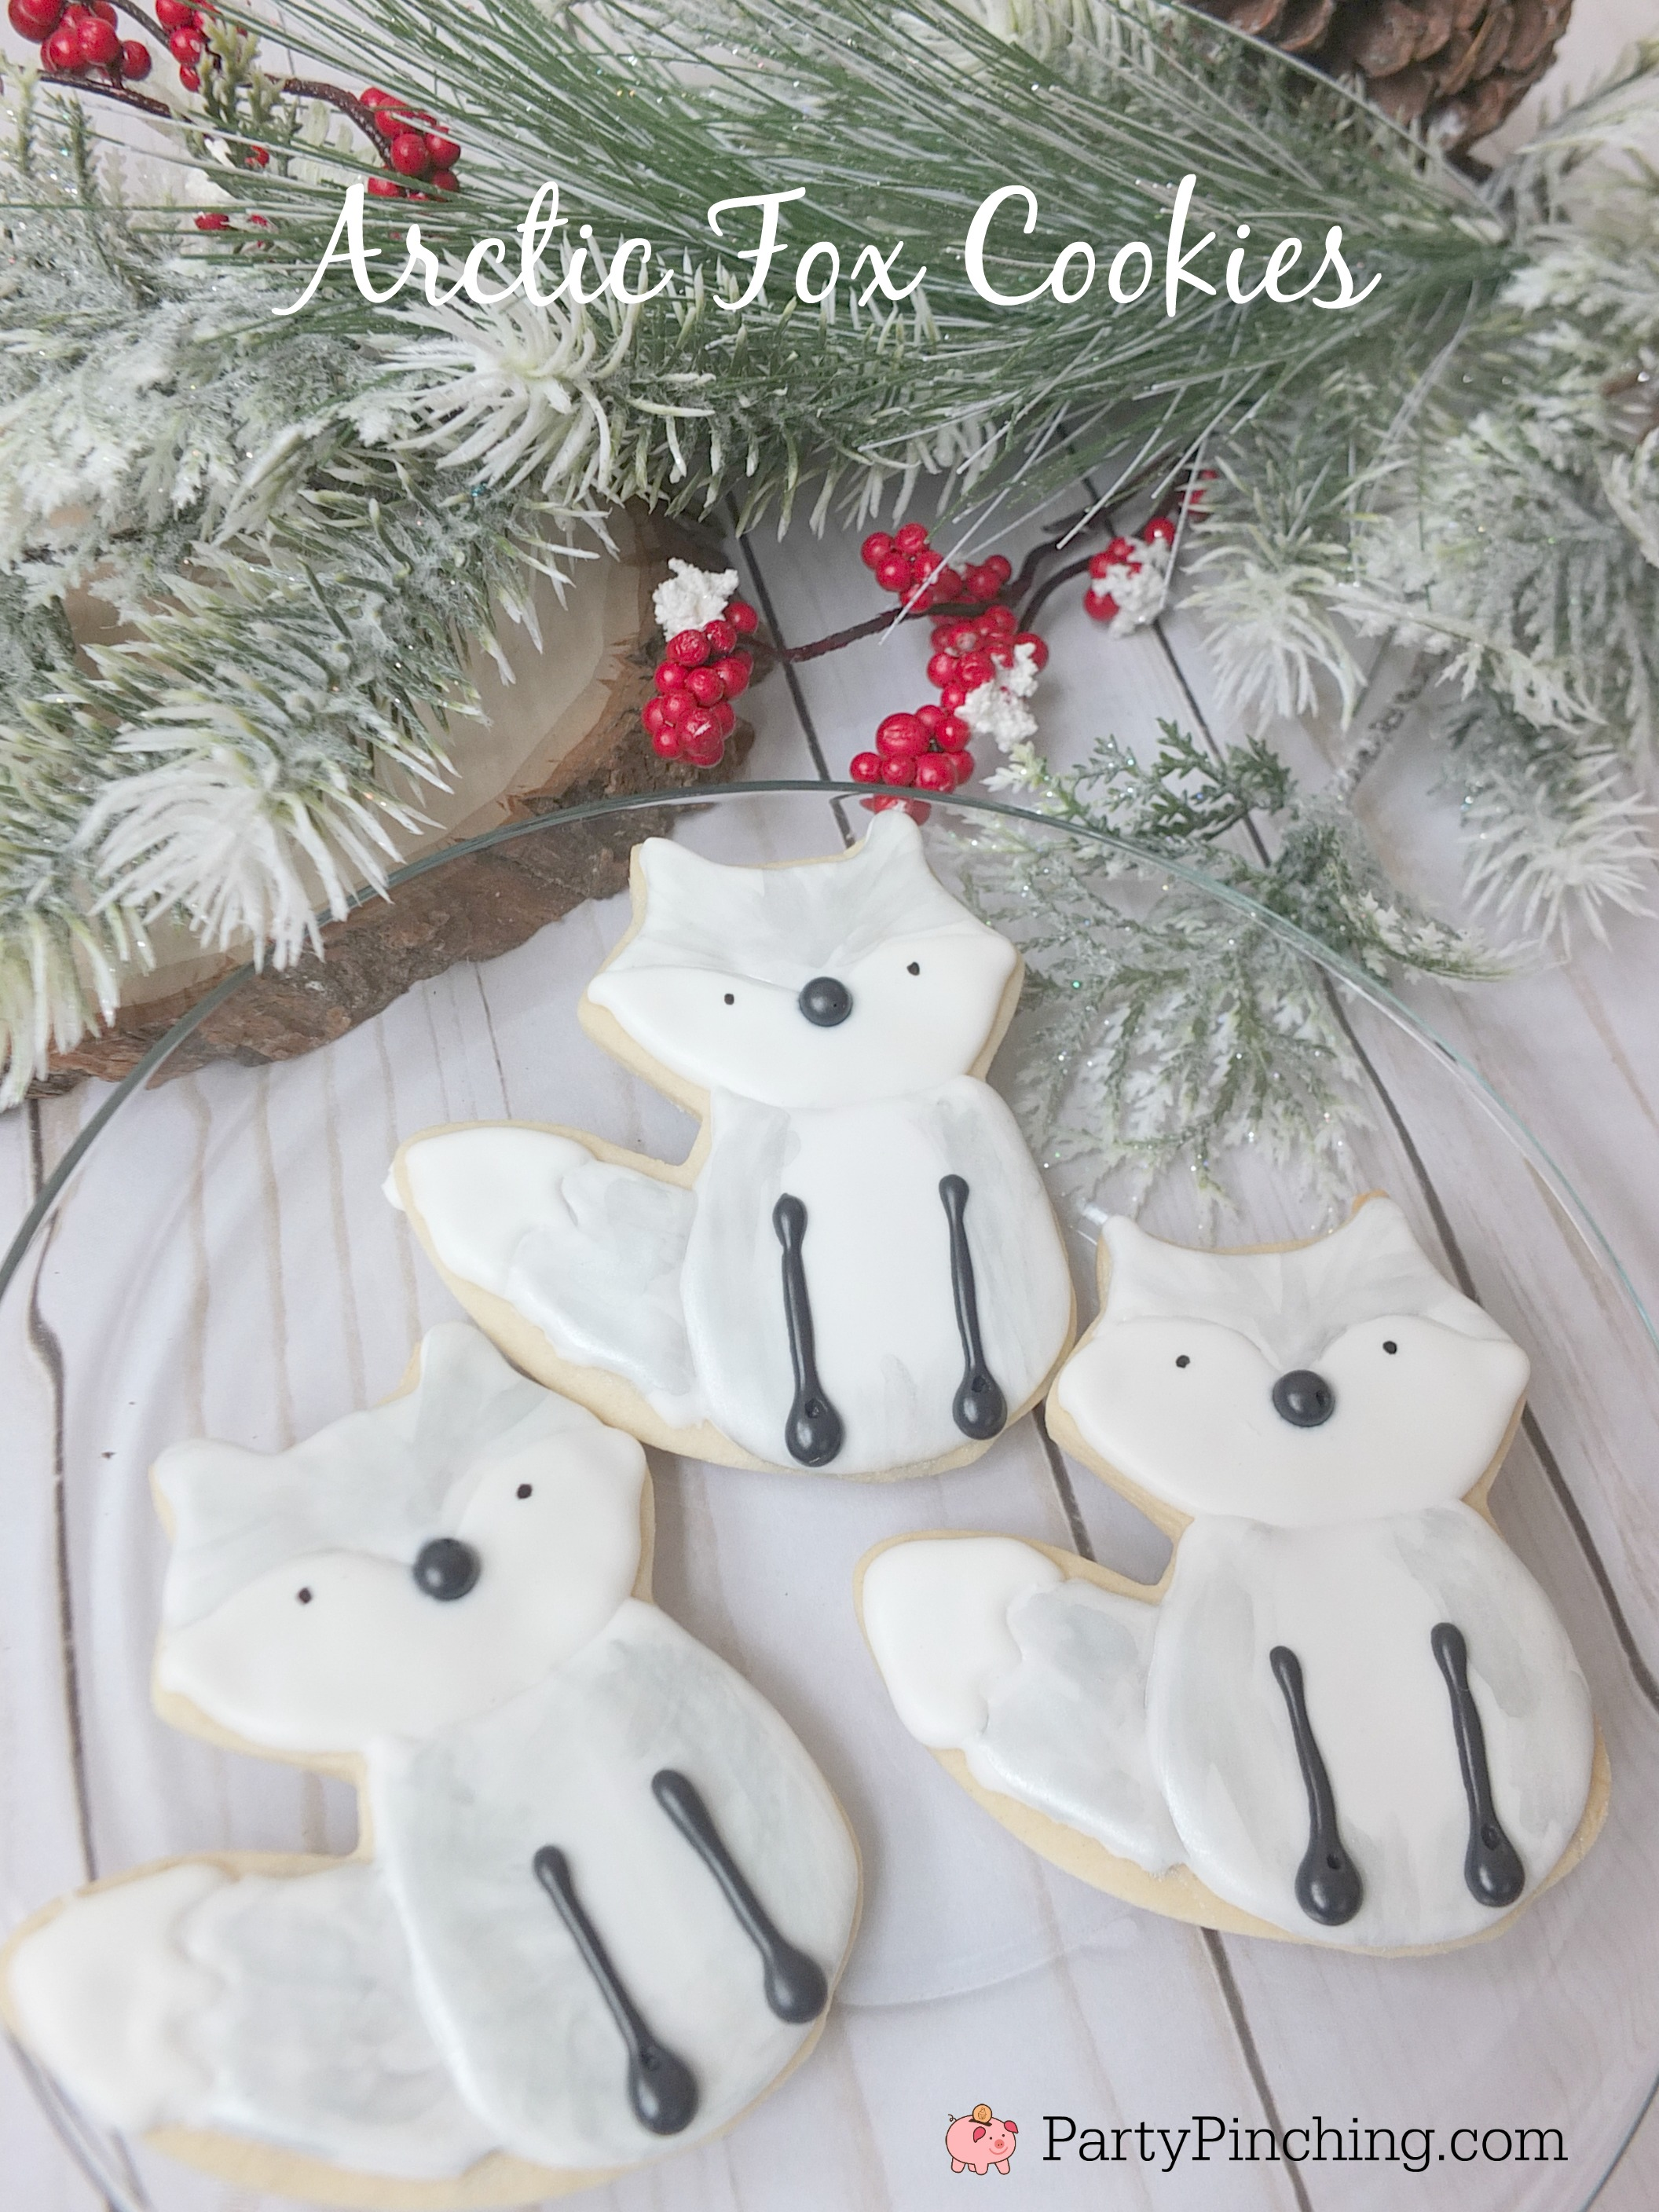 arctic fox cookies, white fox cookies, white winter woodland creature party ideas, cute food, fun food for kids, winter cookies, winter food ideas, snowy cookies, silver fox cookies